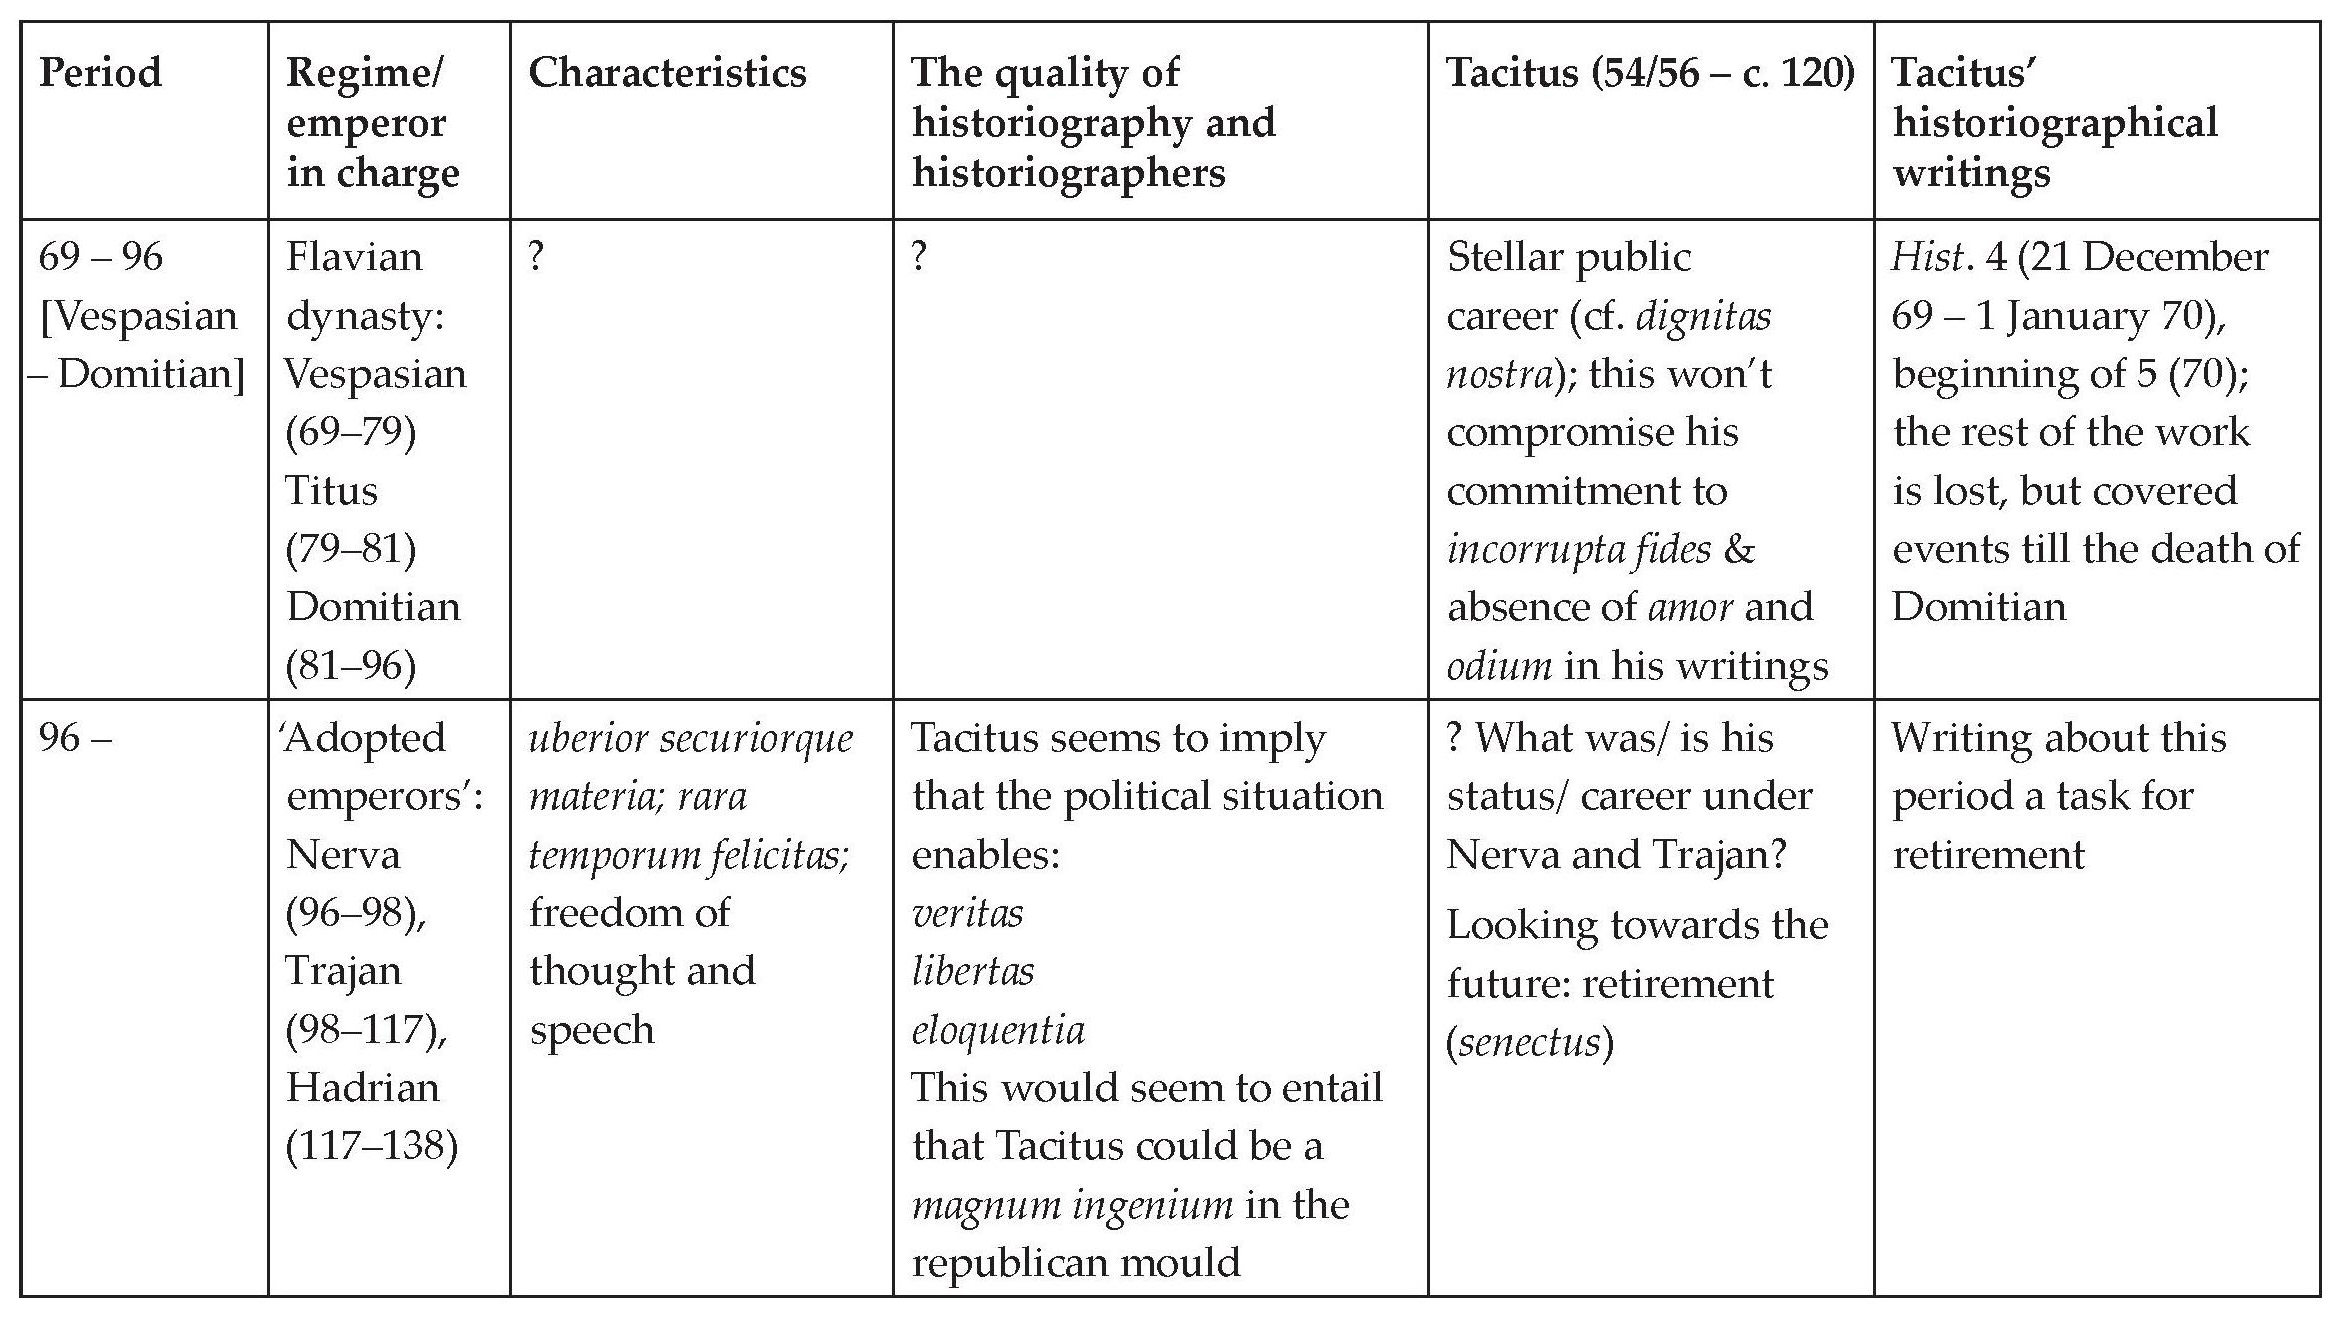 tacitus essay Latin literature flourished with the works of influential writers such as martial,  juvenal, tacitus, suetonius, and pliny the younger, but at the same time a  growing.